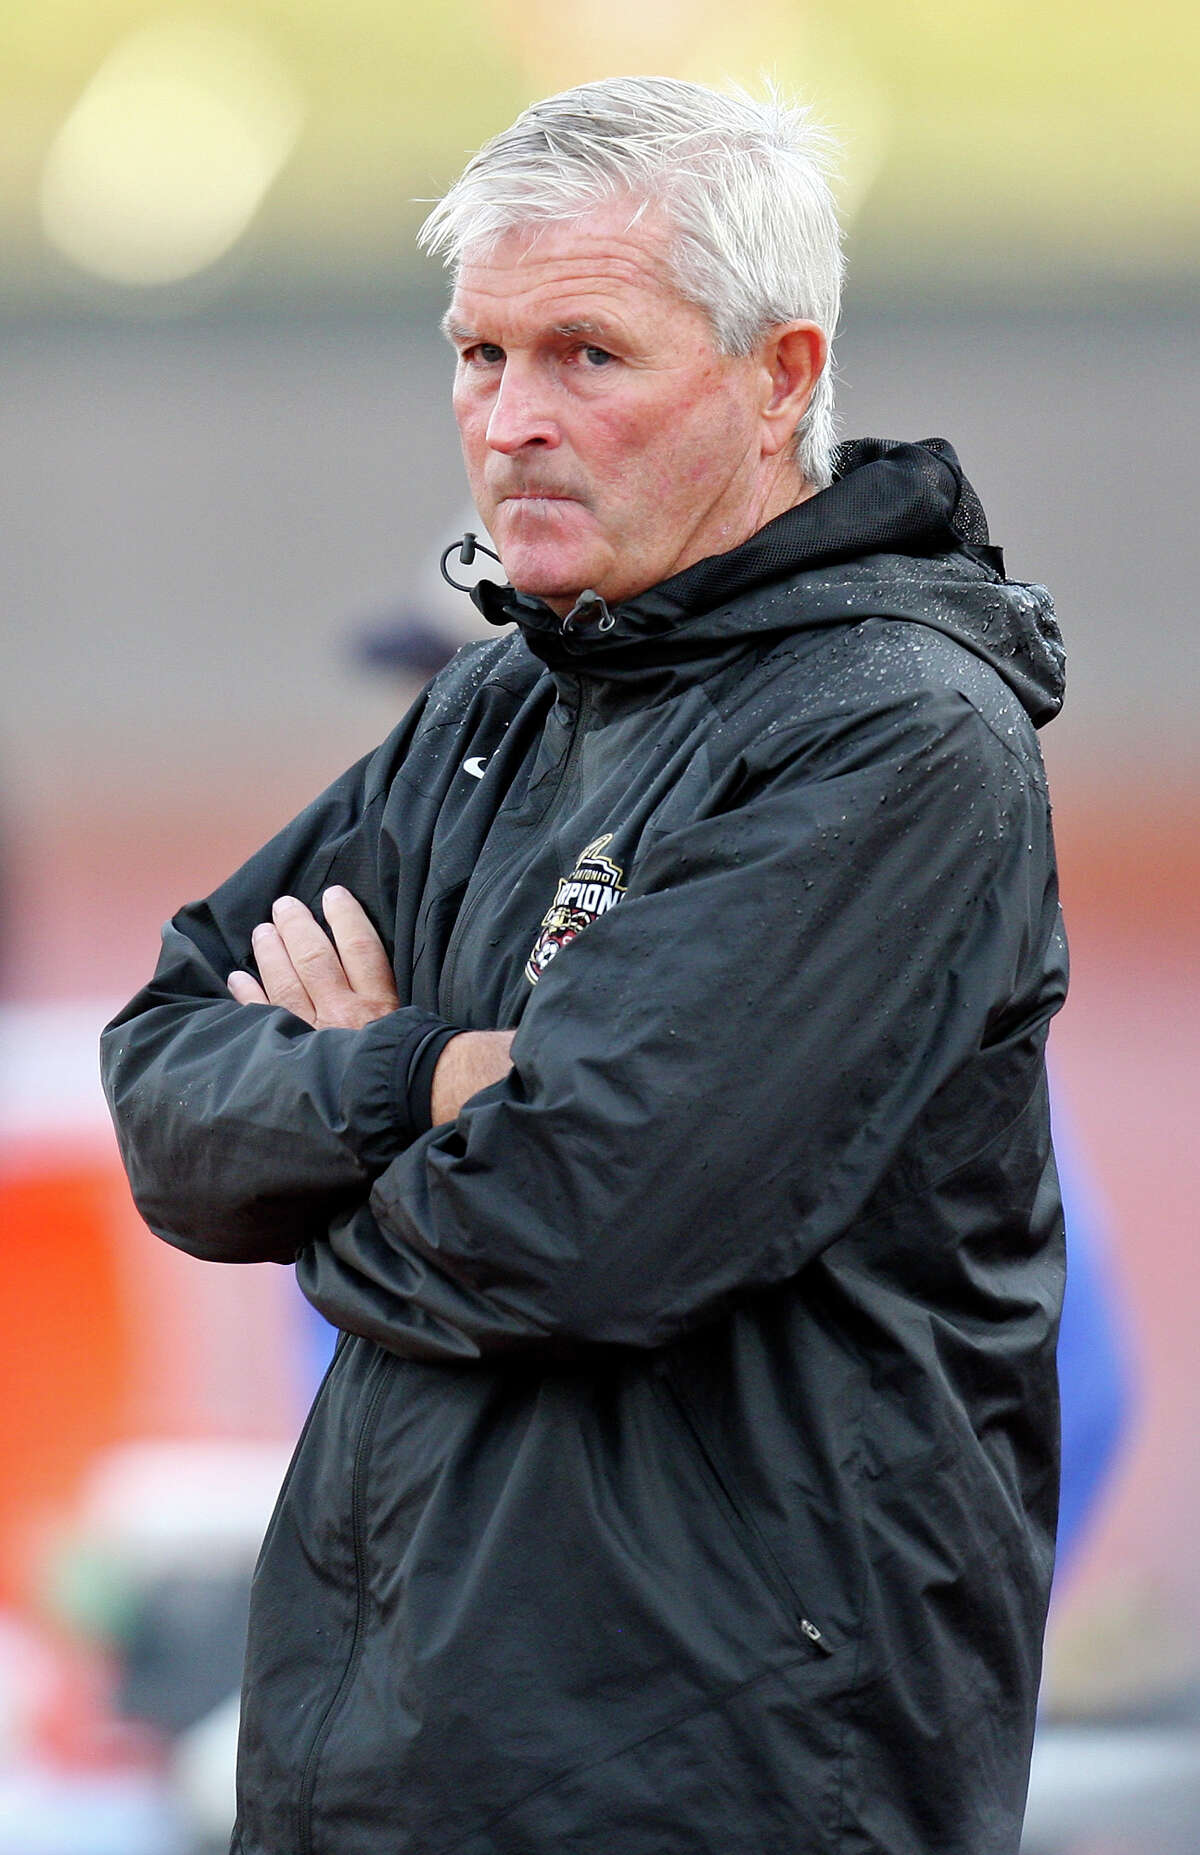 Scorpions head coach Tim Hankinson walks the sidelines during first half action against the RailHawks Sunday Sept. 16, 2012 at Heroes Stadium.